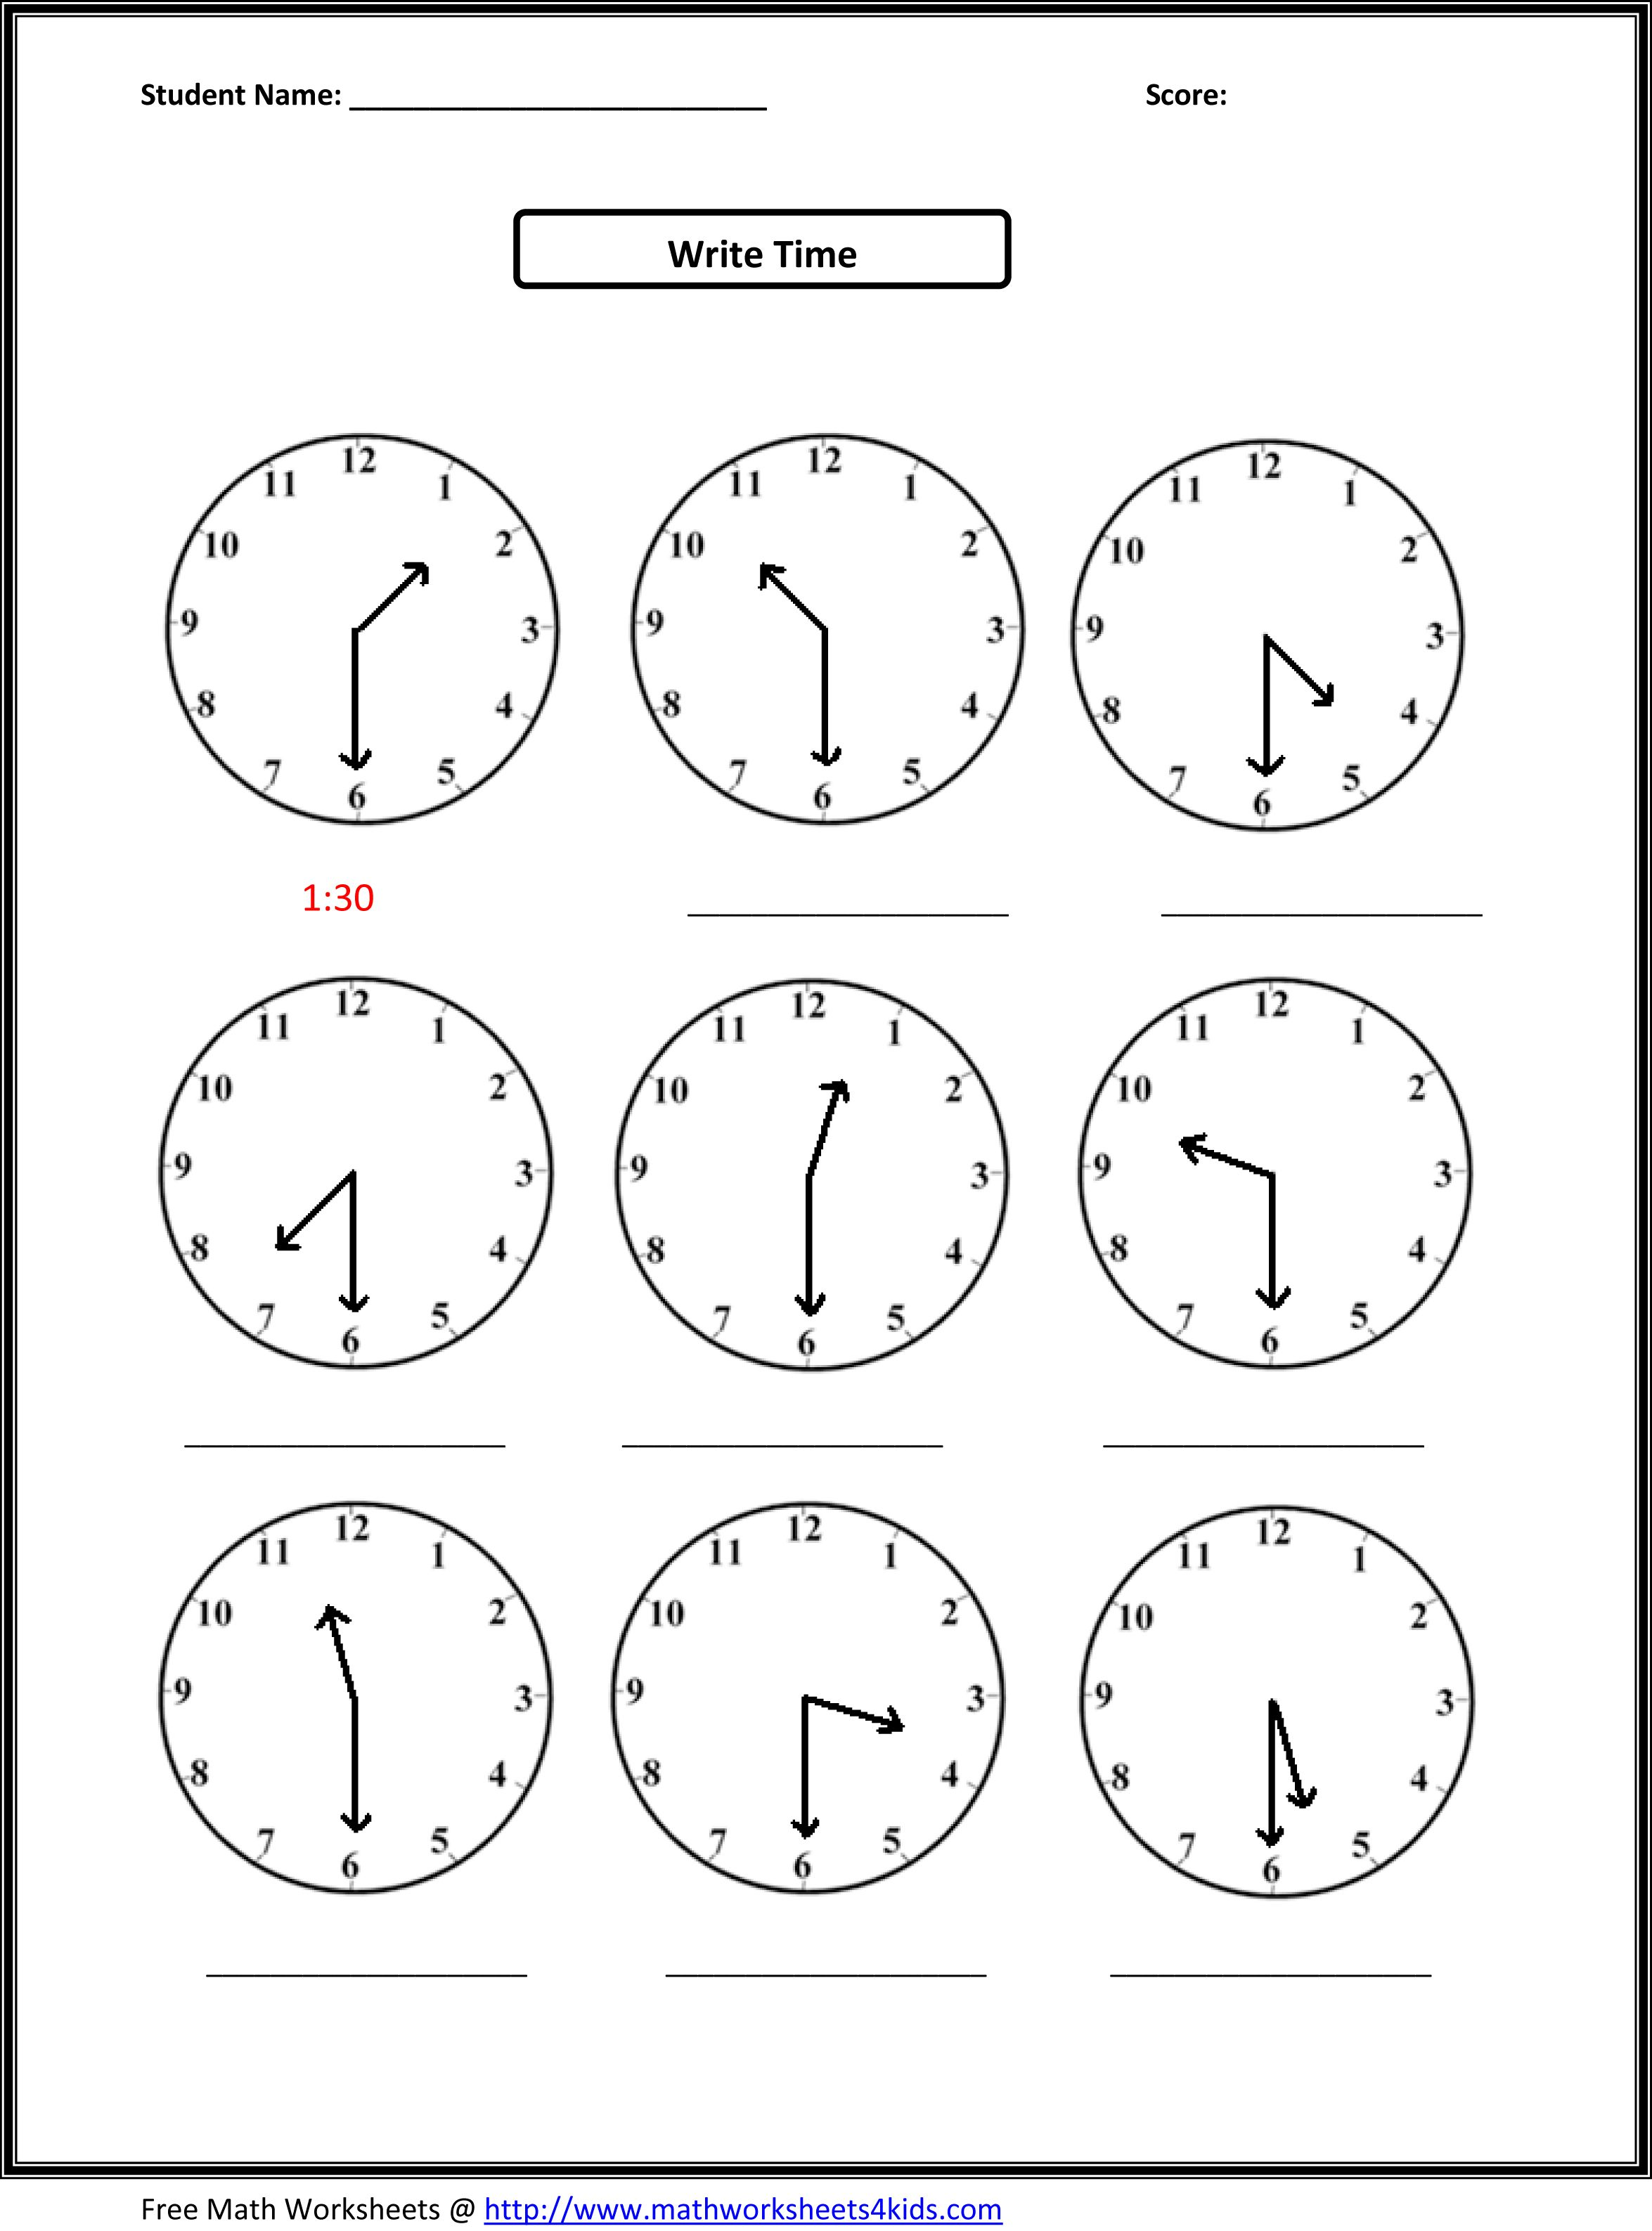 Proatmealus  Personable Worksheet On Time For Grade   Reocurent With Extraordinary Free Printable Telling Time Worksheets Nd Grade  Reocurent With Captivating Year  Maths Worksheets Also Converting Units Of Capacity Worksheet In Addition Spelling Activity Worksheet And Median Mode Mean Worksheets As Well As Preposition Worksheets For Th Grade Additionally Angles Worksheet Grade  From Reocurentcom With Proatmealus  Extraordinary Worksheet On Time For Grade   Reocurent With Captivating Free Printable Telling Time Worksheets Nd Grade  Reocurent And Personable Year  Maths Worksheets Also Converting Units Of Capacity Worksheet In Addition Spelling Activity Worksheet From Reocurentcom